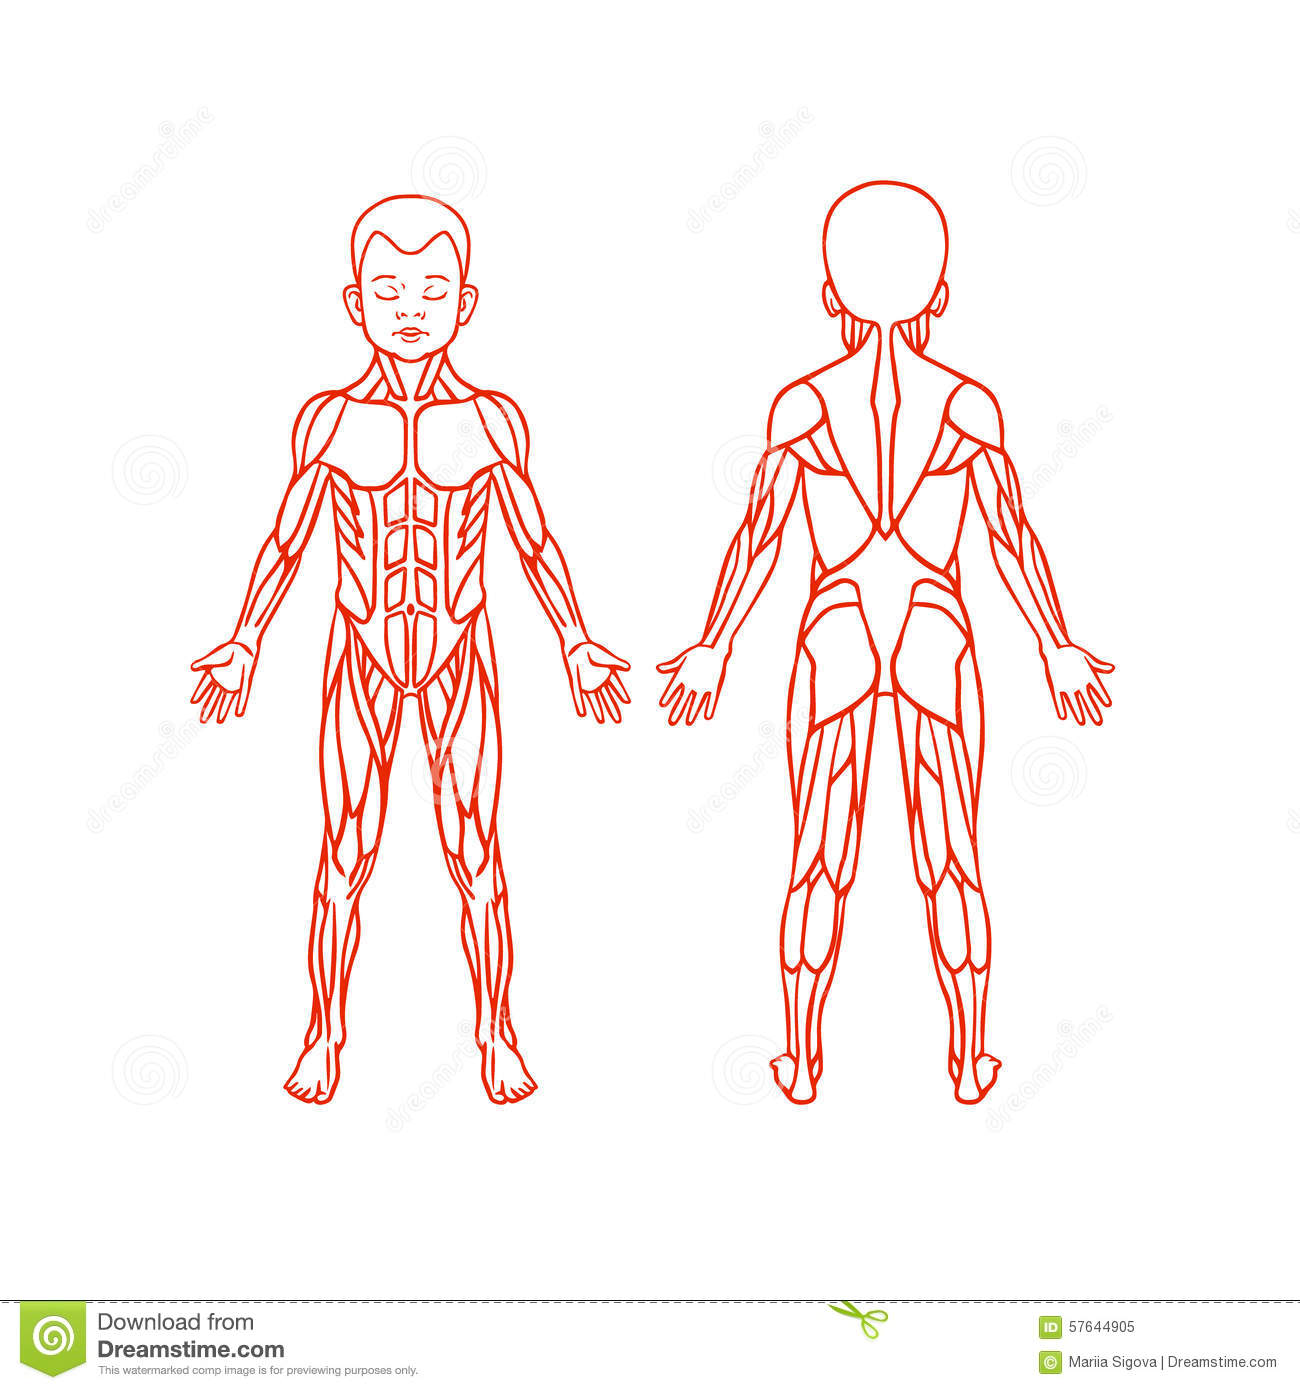 Muscle Human Body Outline Diagram For Kids